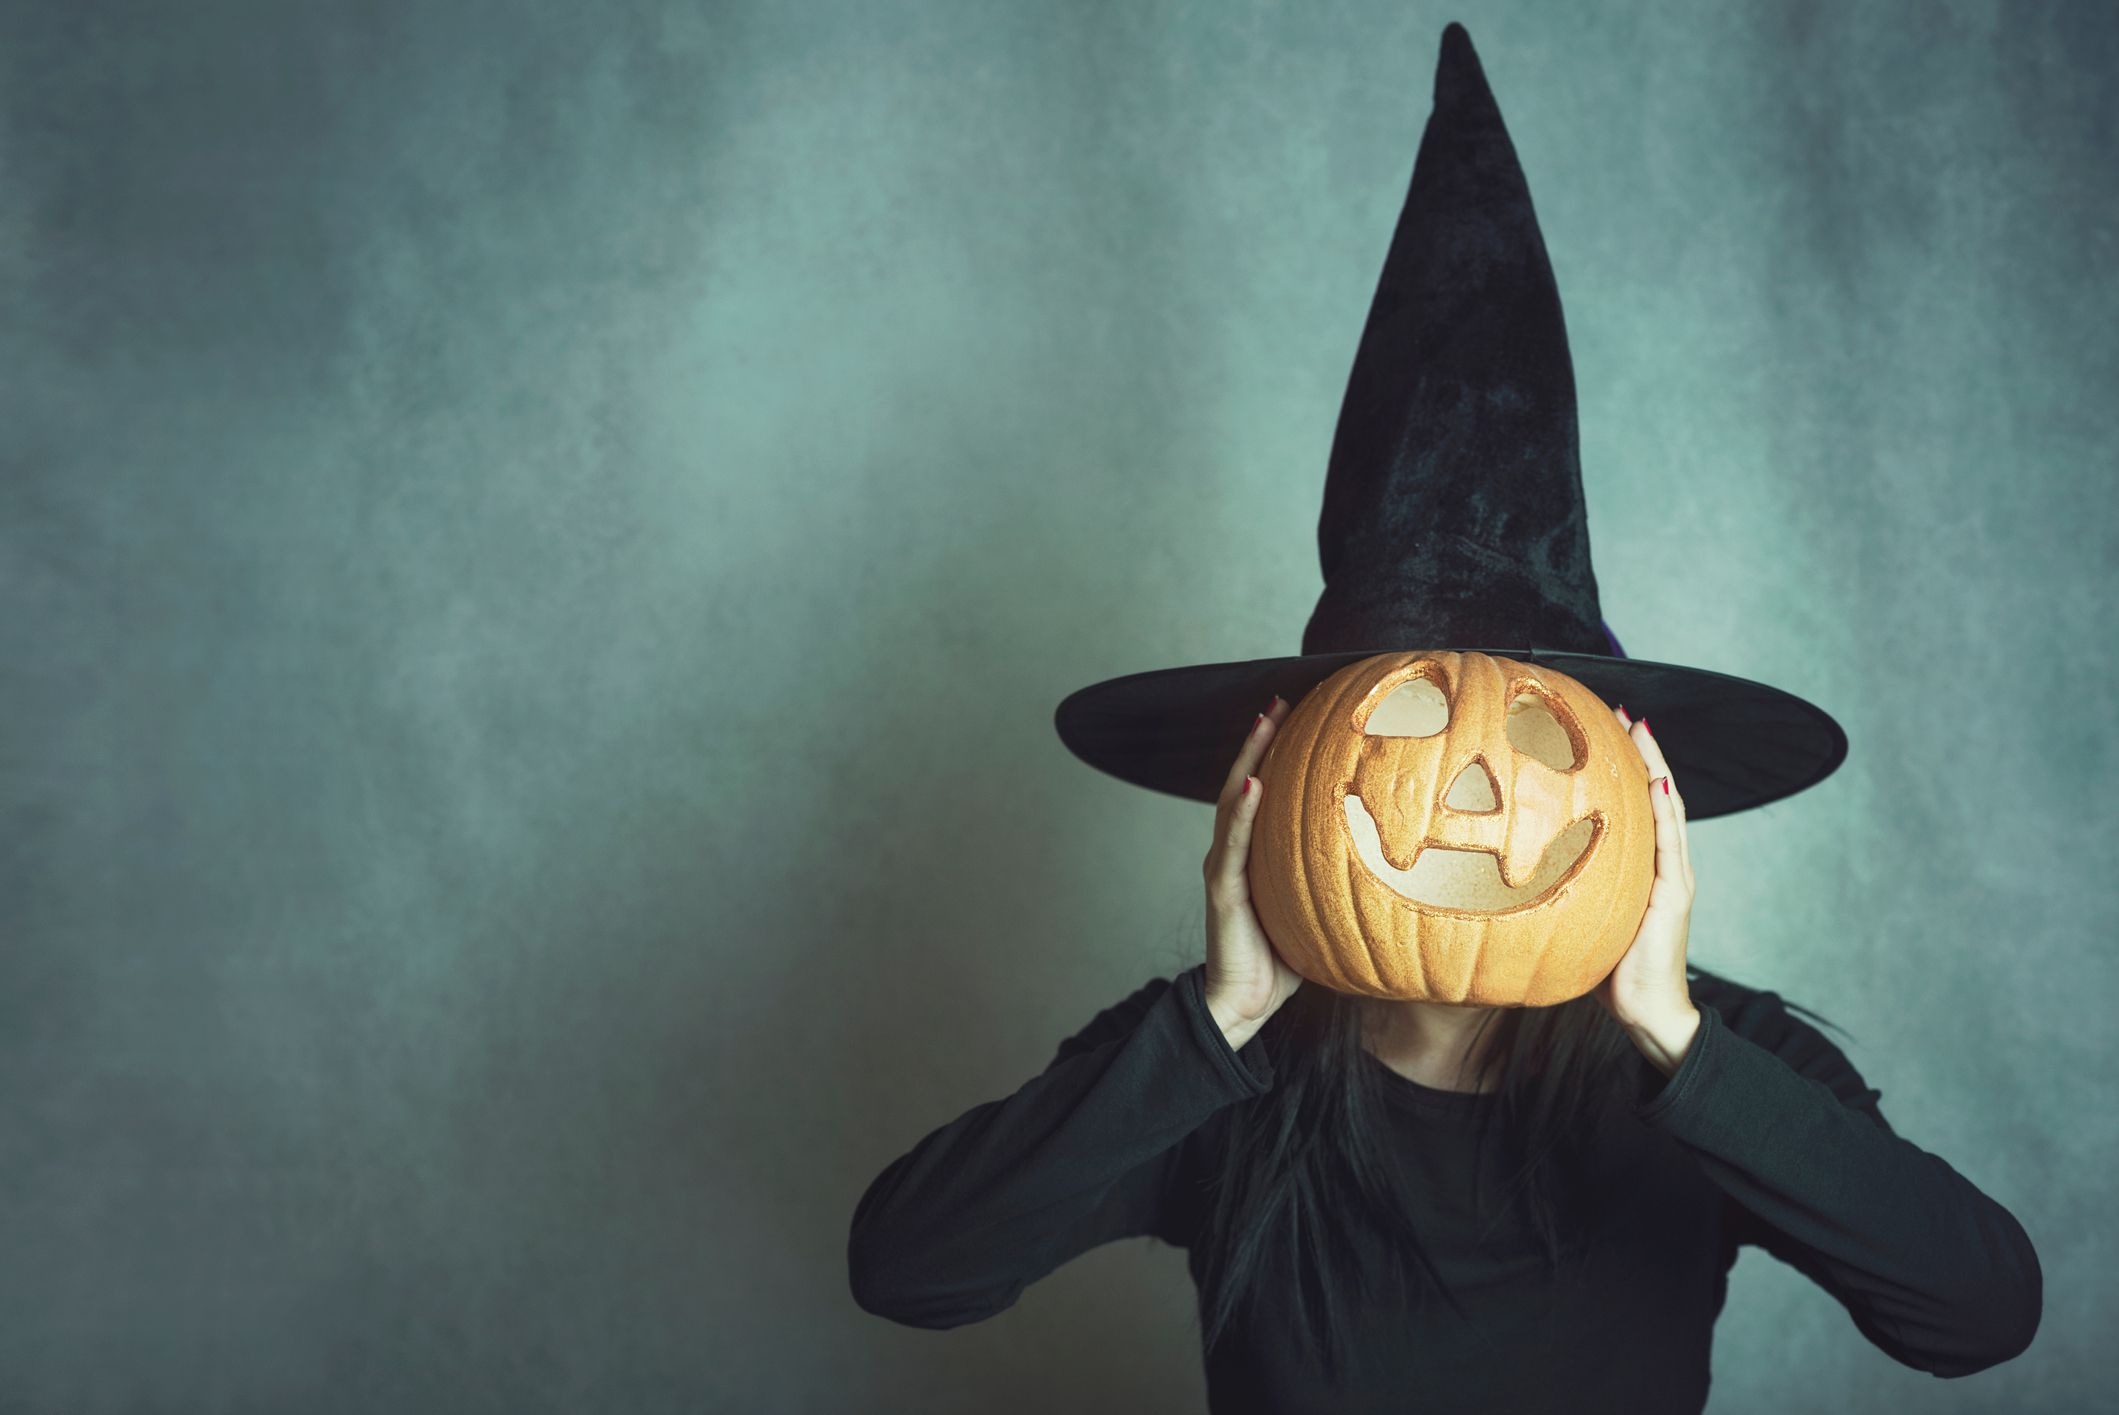 A woman wearing a witch hat holding a jack-o-lantern.